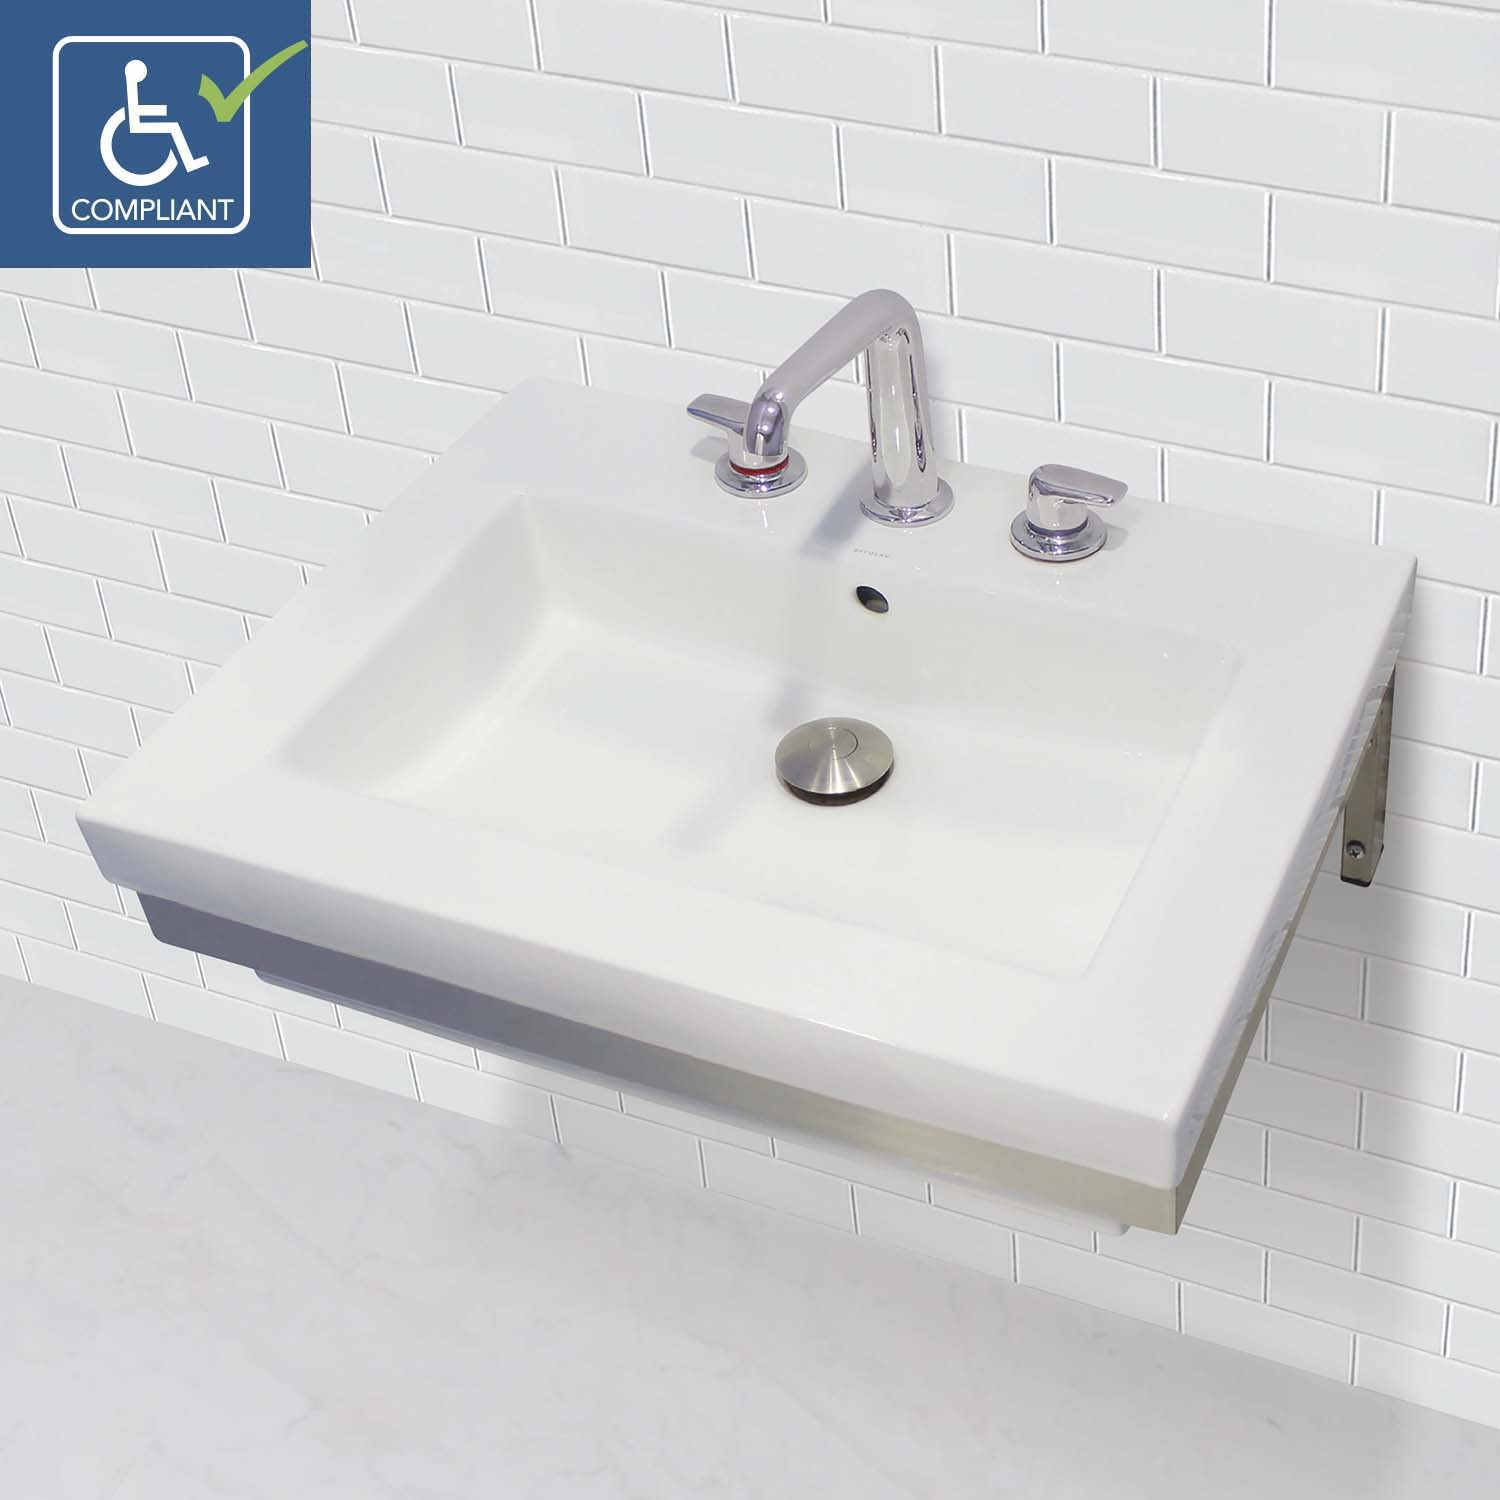 Decolav Ciera1819w 8b Cwh Wall Mount Rectangular Vitreous China Bathroom Sink With Stainless Steel Mounting Bracket